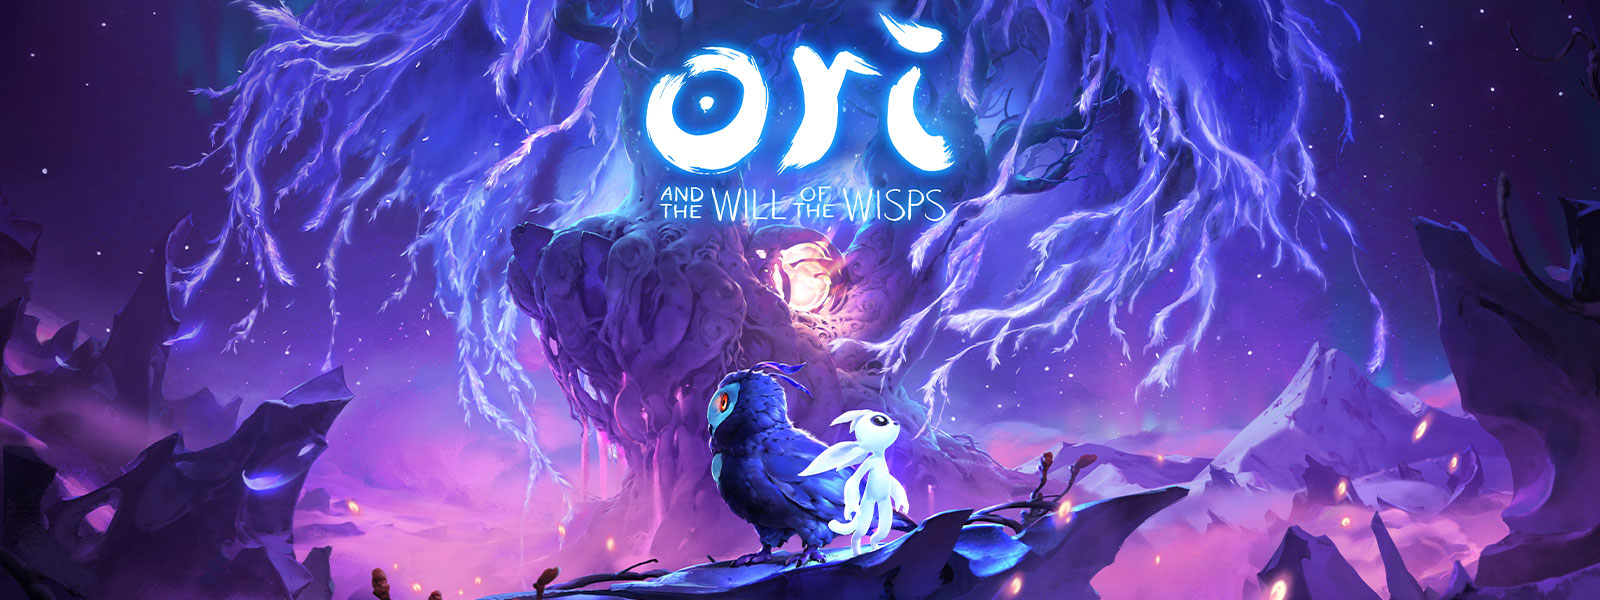 Ori and the Will of the Wisps, Ori står ved siden av ei ugle foran et underlig purpurrødt tre